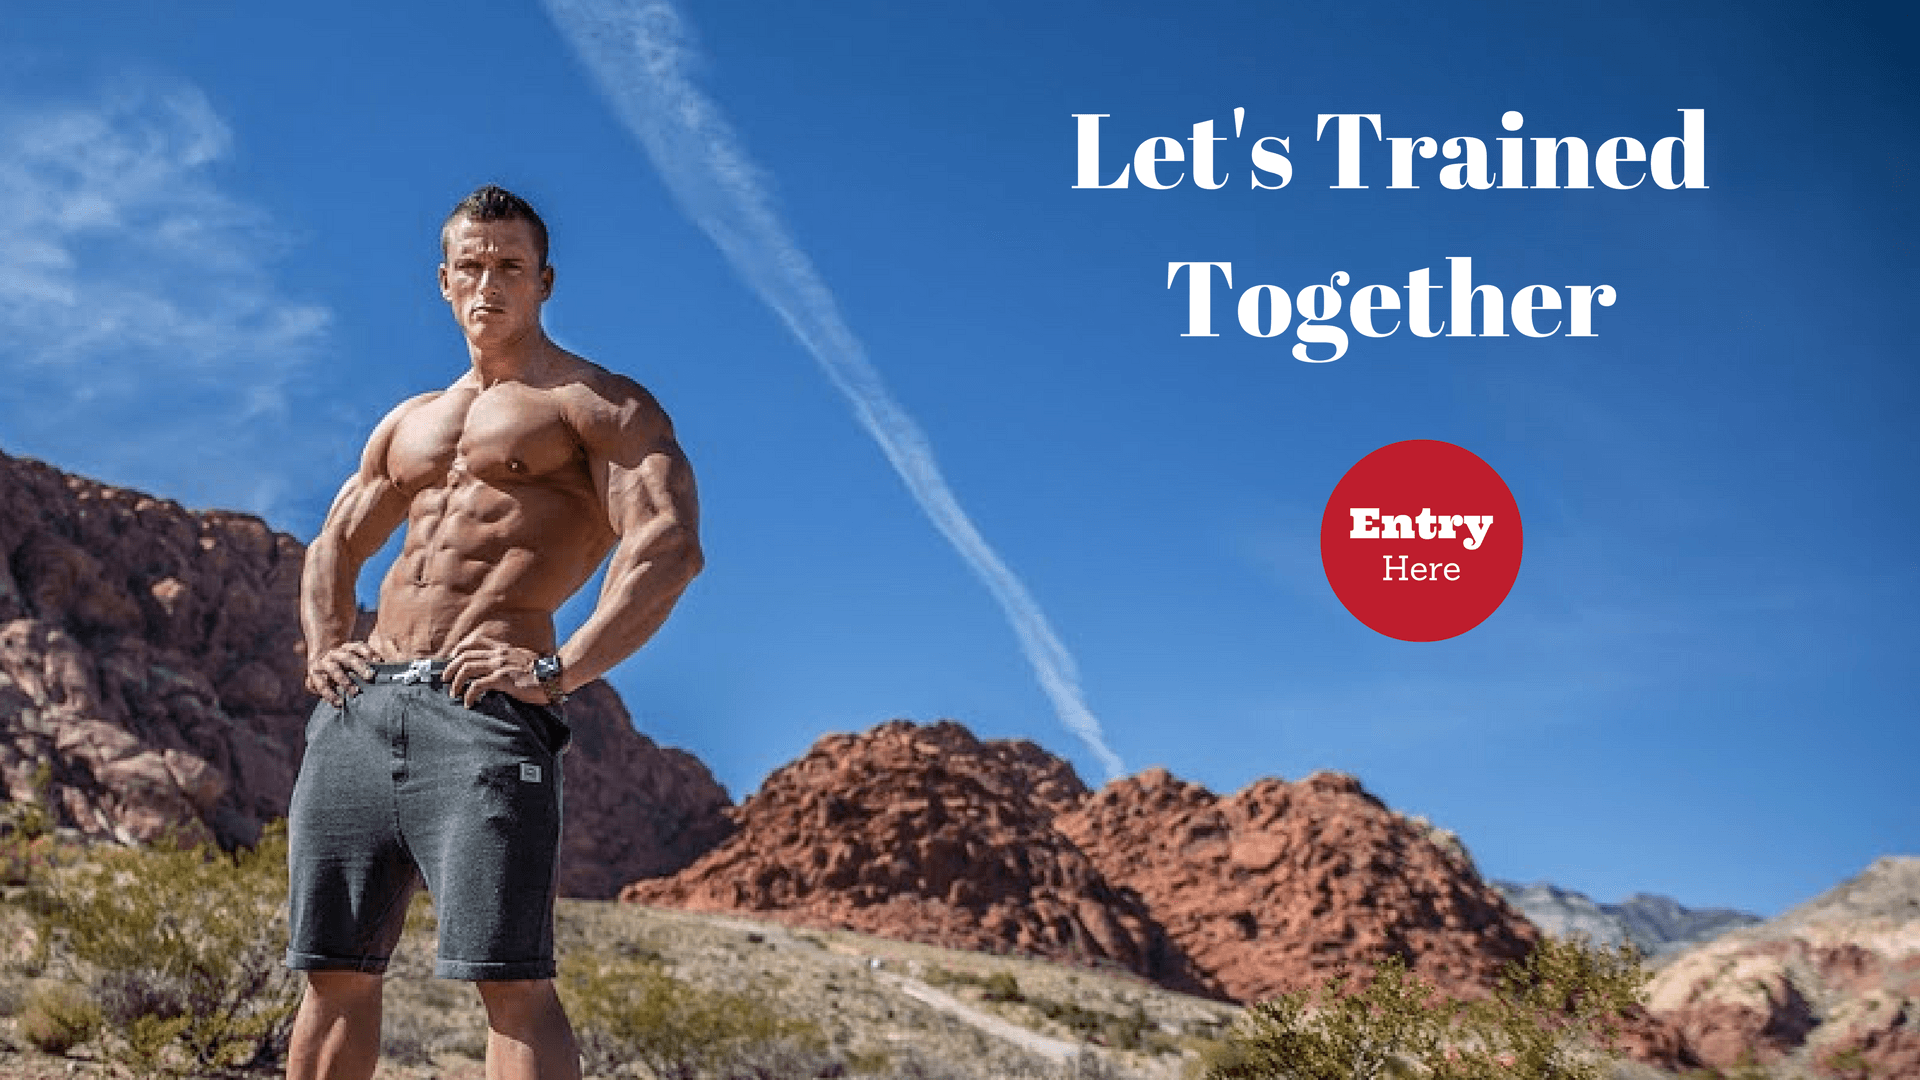 Let's Trained Together!